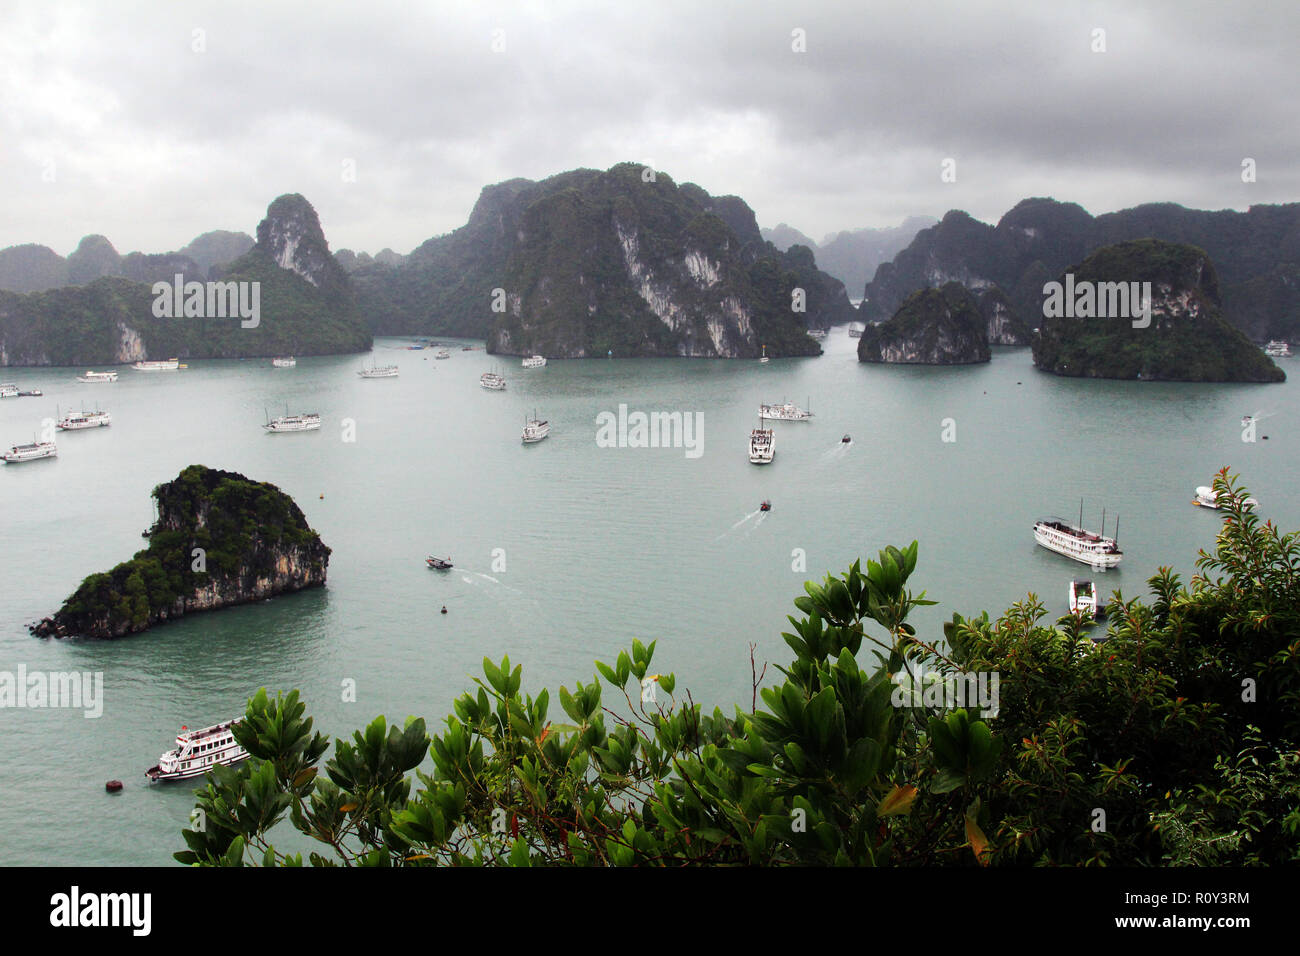 Birdseye view from an overlook at Ha Long Bay, Vietnam - Stock Image